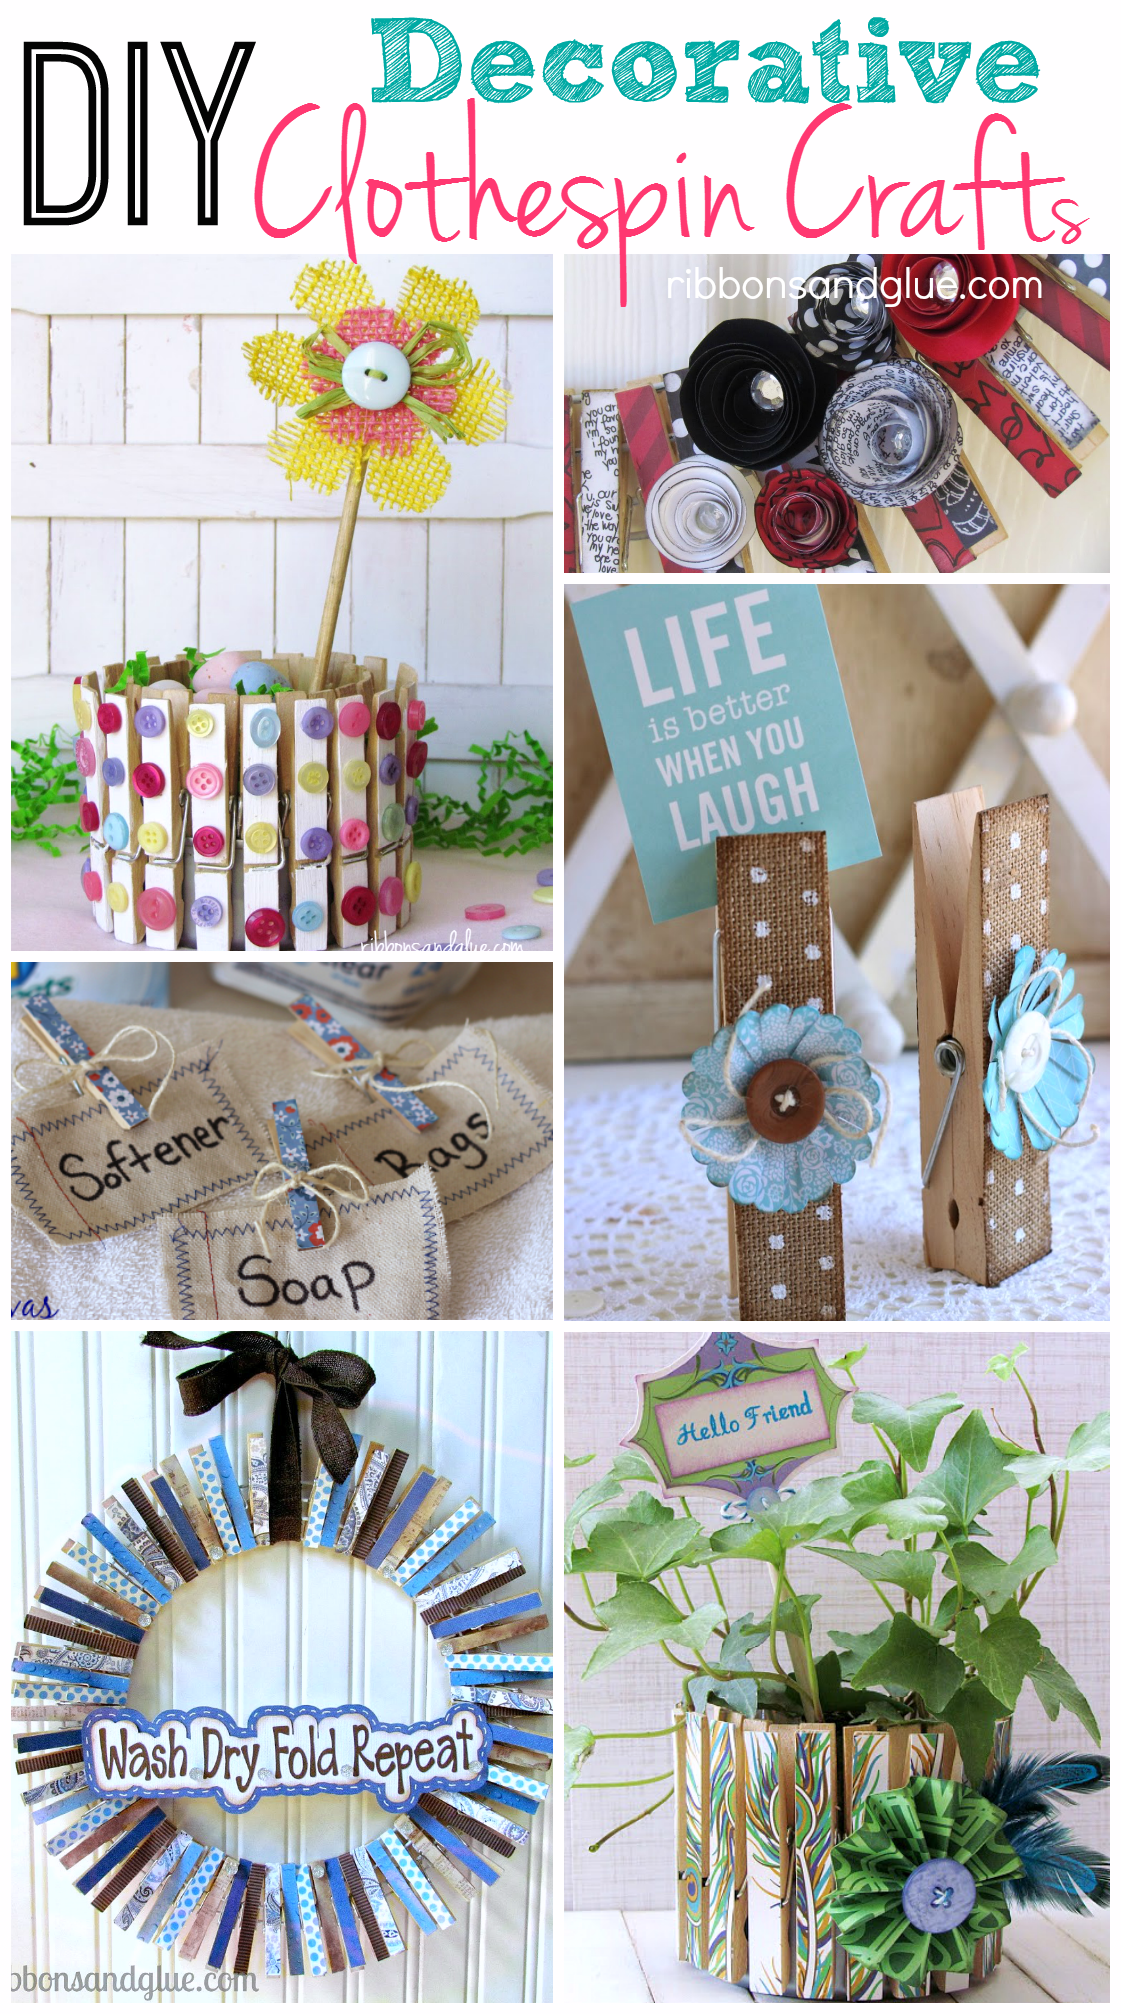 Diy Decorative Clothespin Crafts